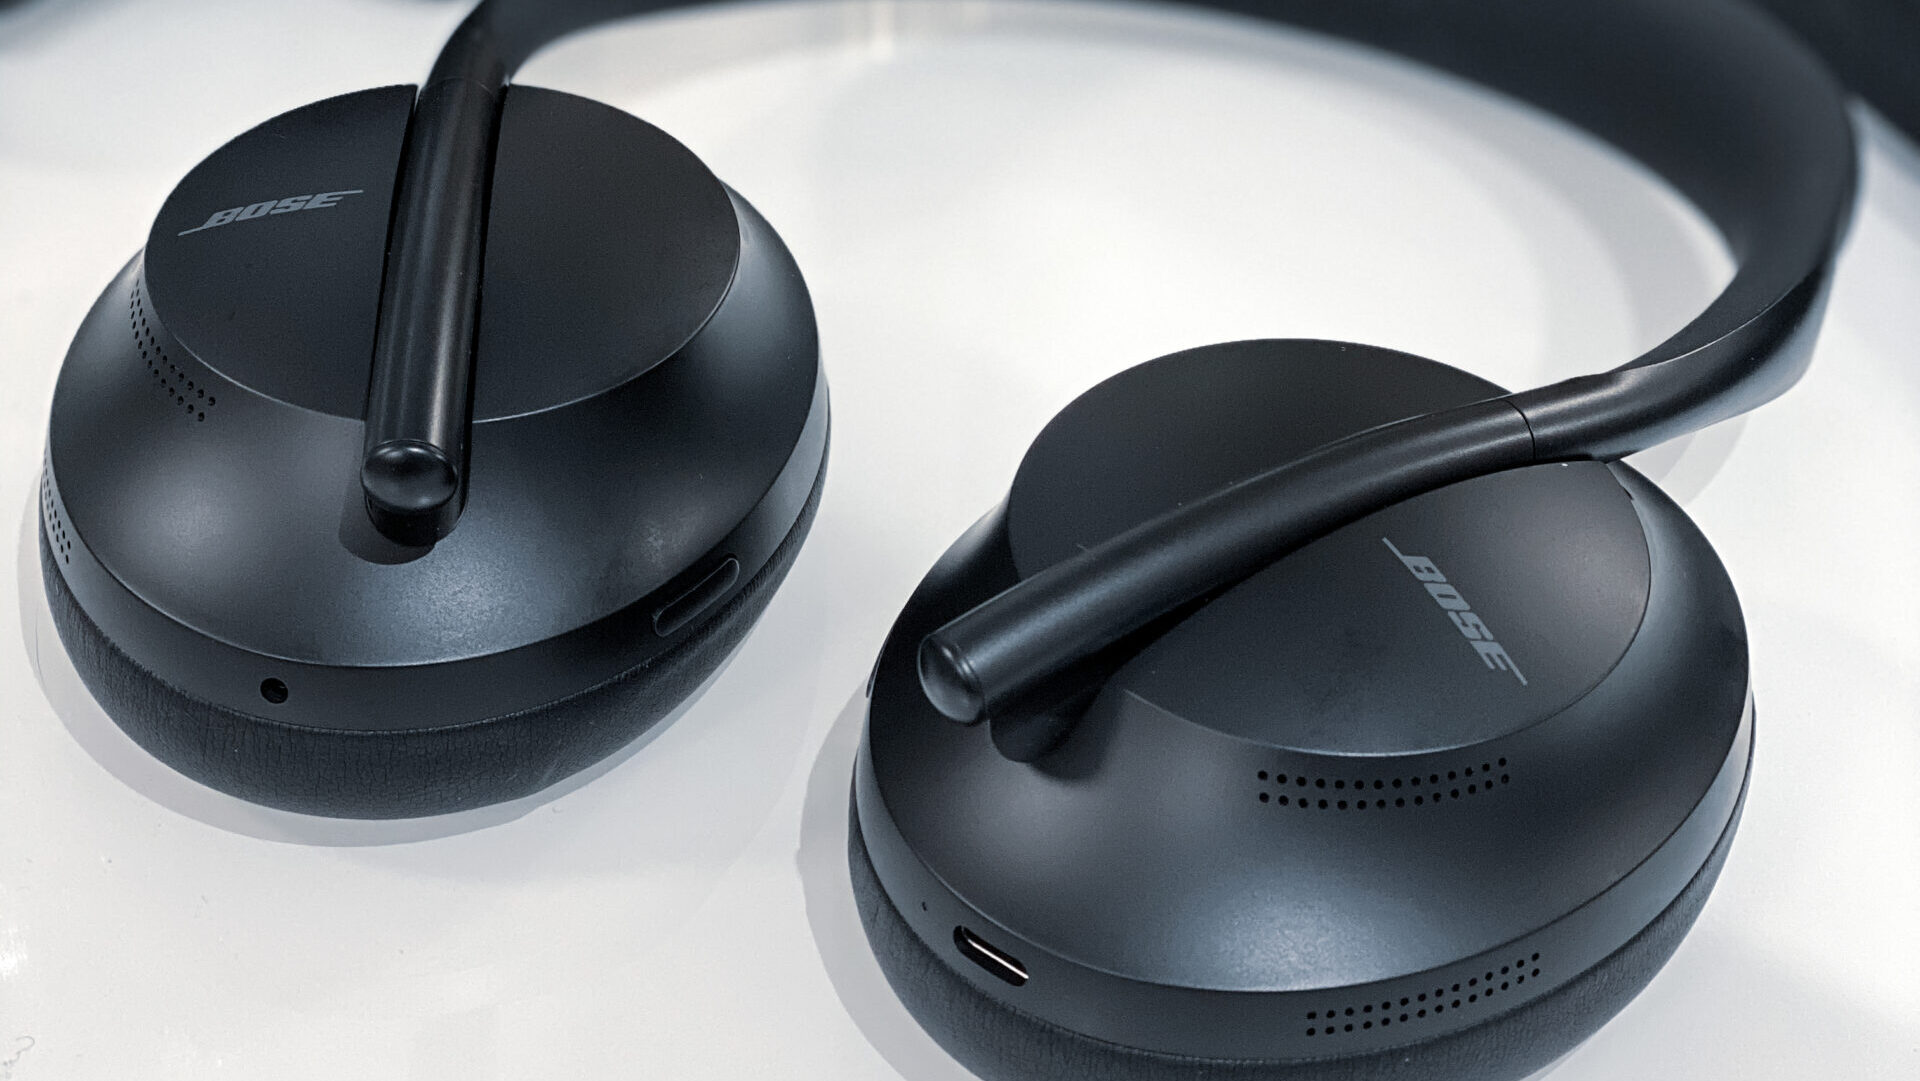 Bose 700 noise cancelling headphones review: worth the money?